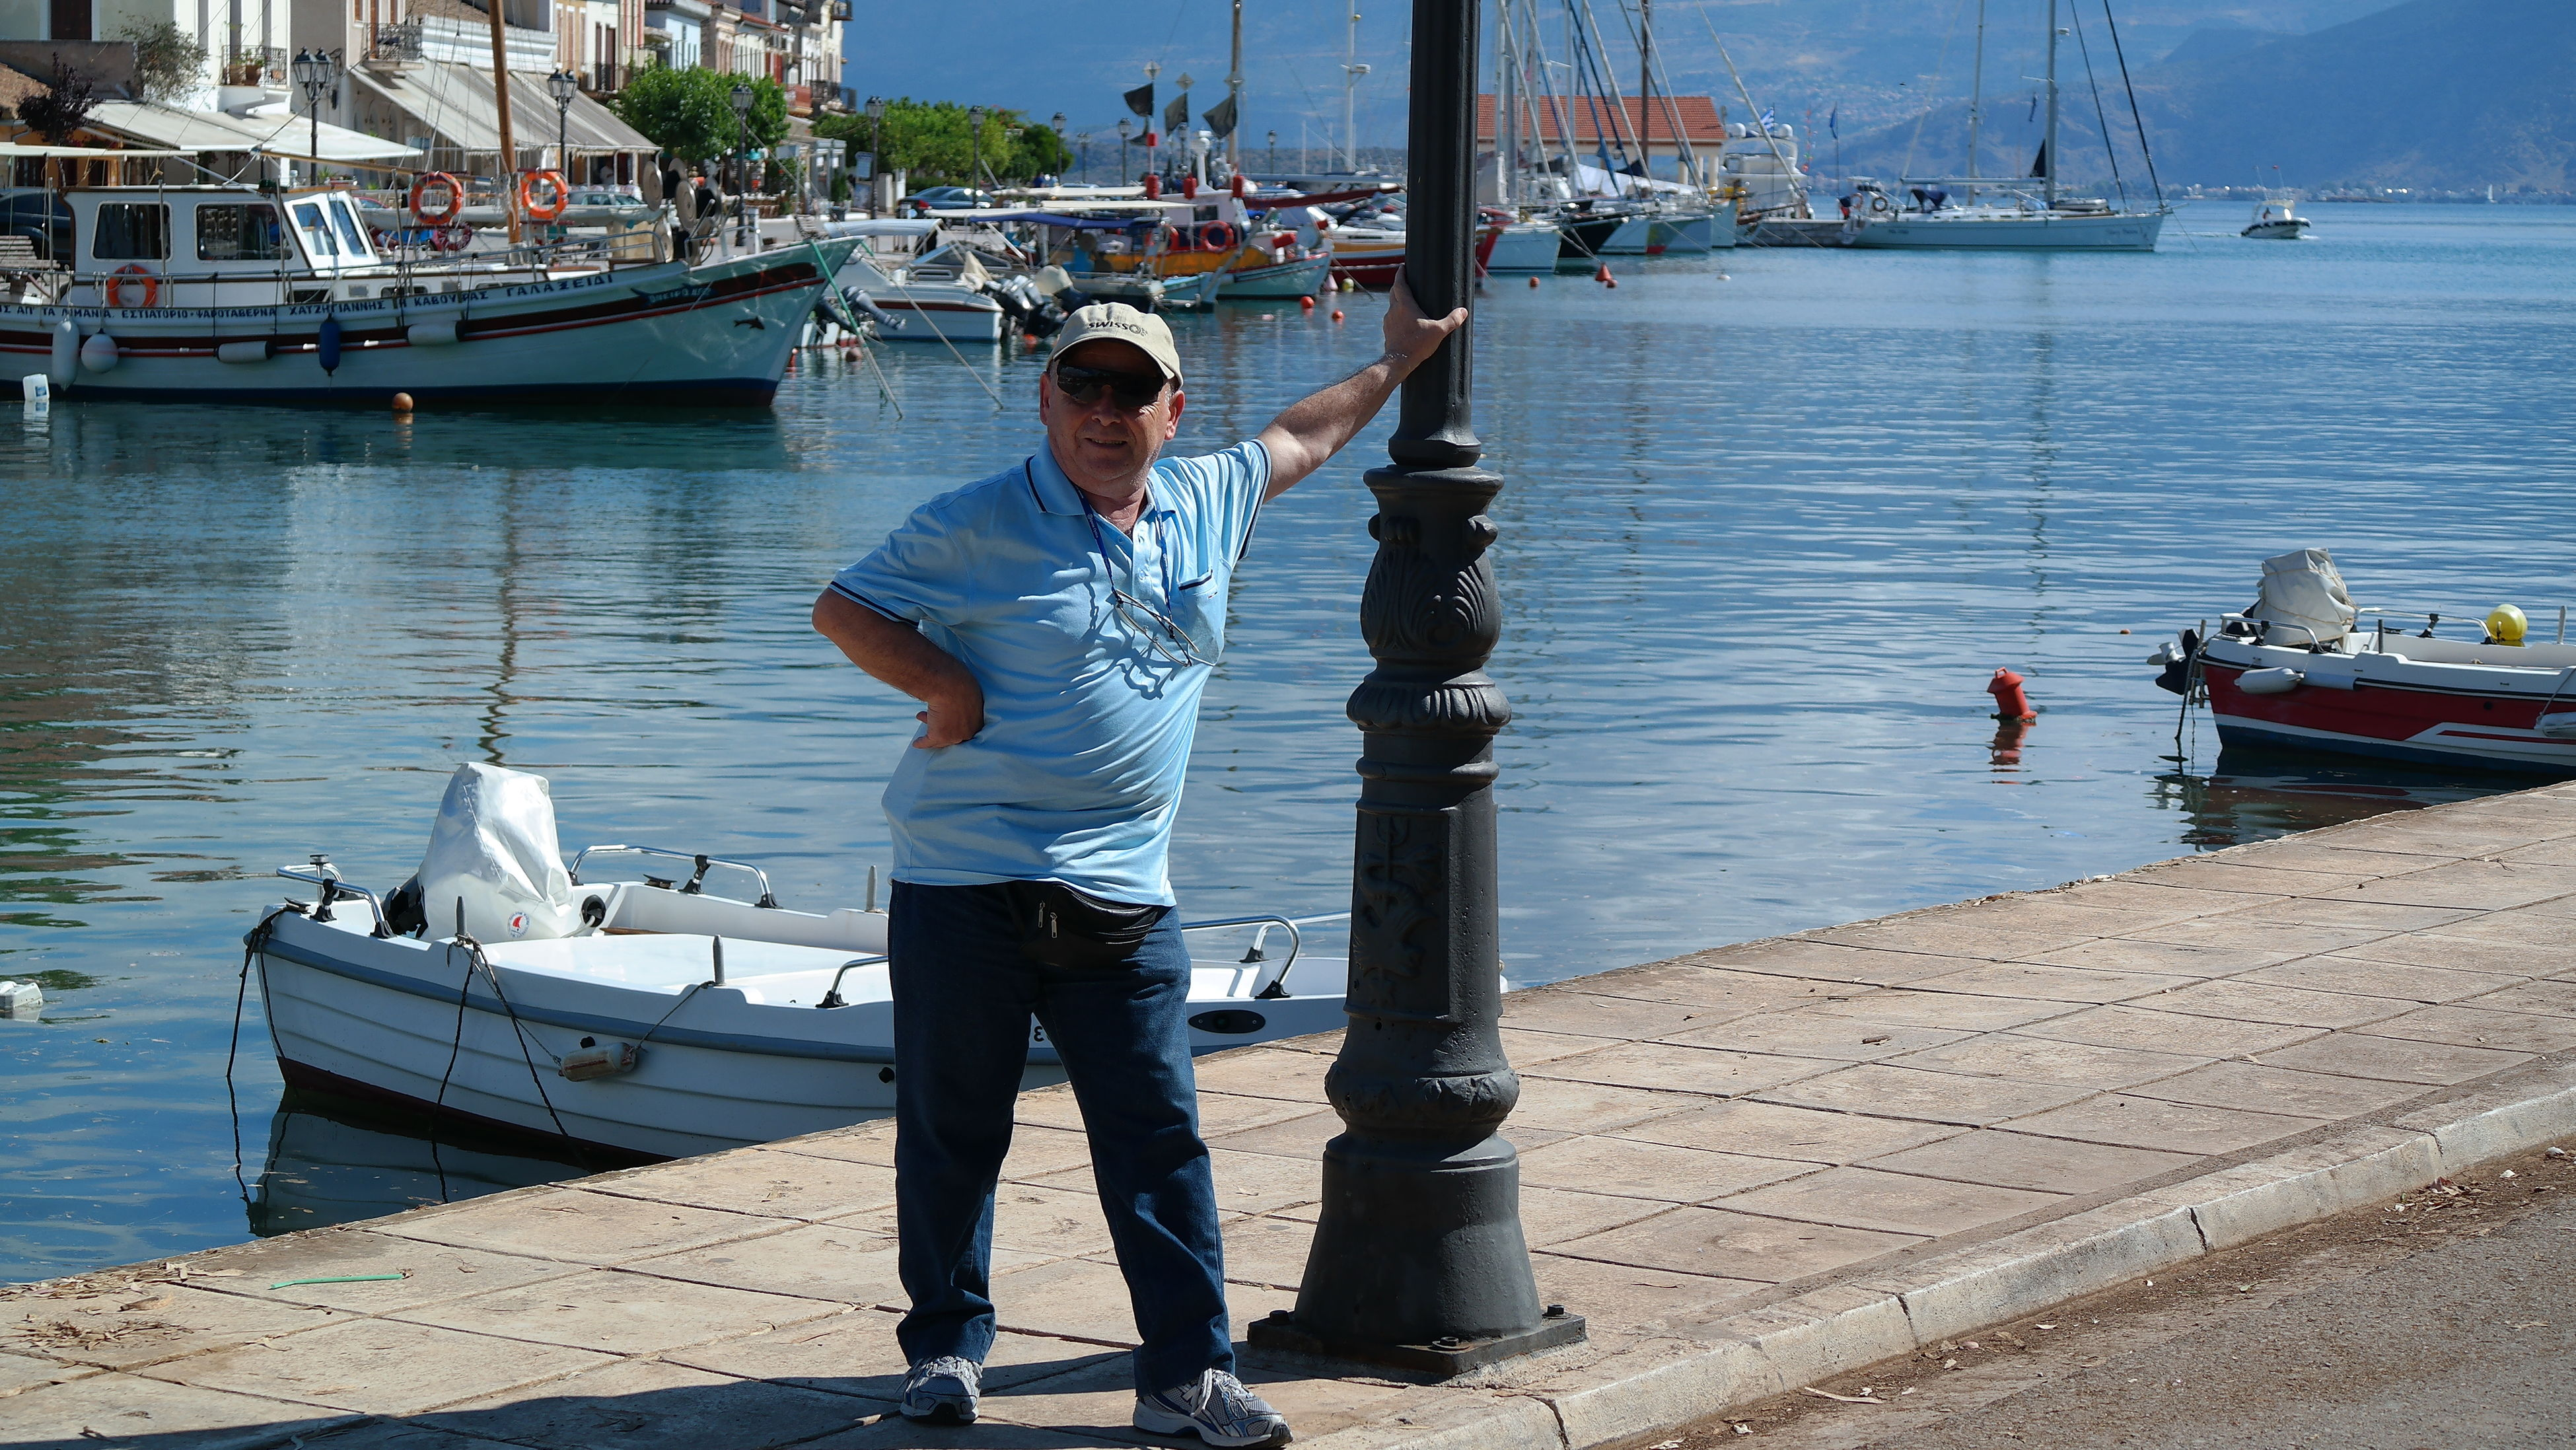 nautical vessel, water, mode of transport, real people, moored, boat, transportation, one person, harbor, full length, day, rear view, casual clothing, standing, men, outdoors, sea, occupation, nature, yacht, sky, young adult